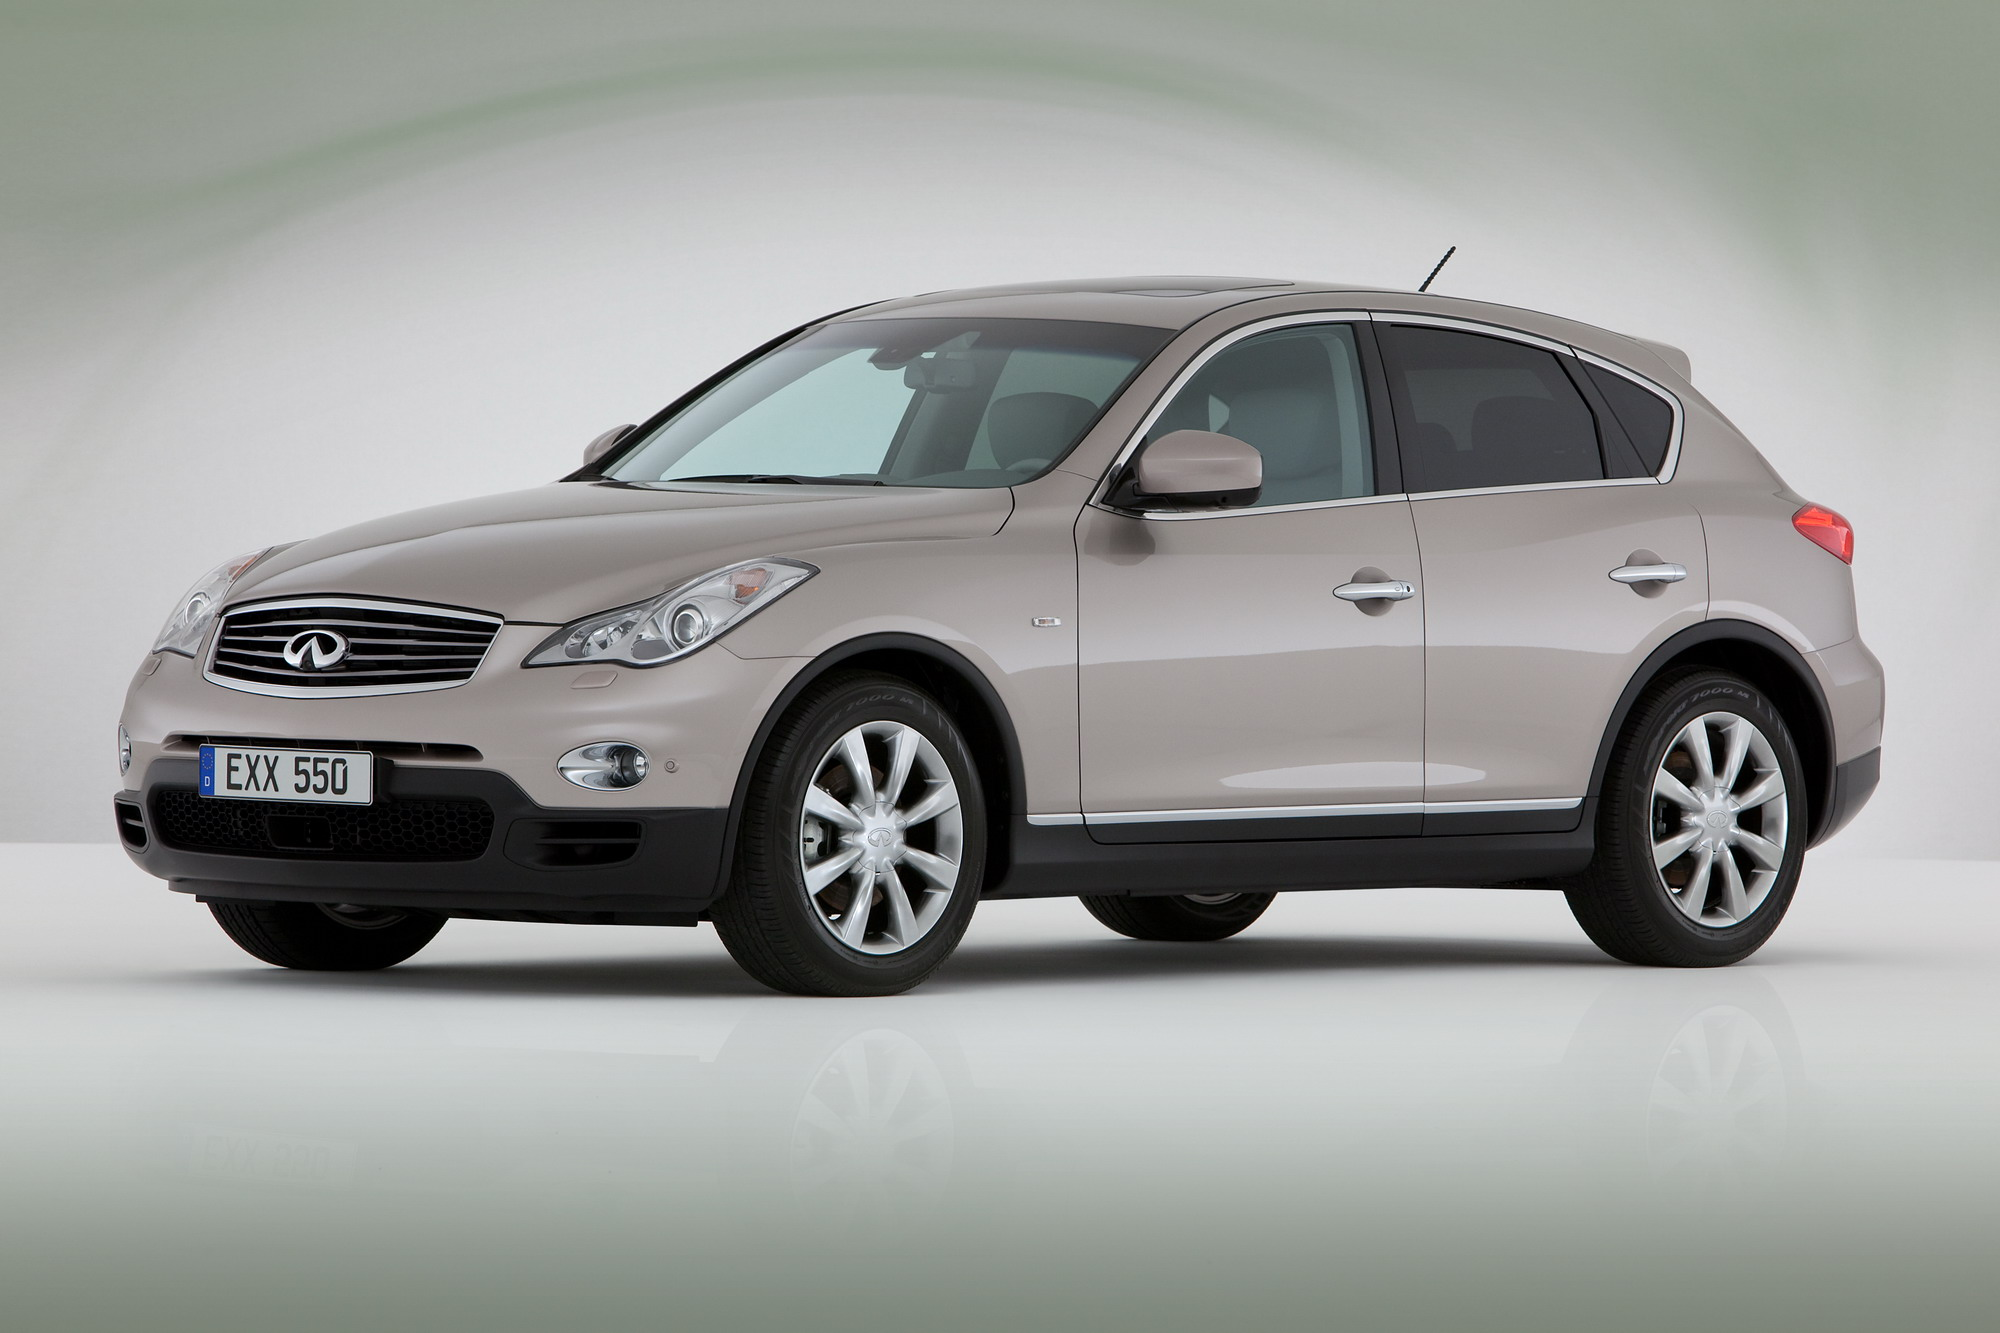 infiniti ex 3.0 d review